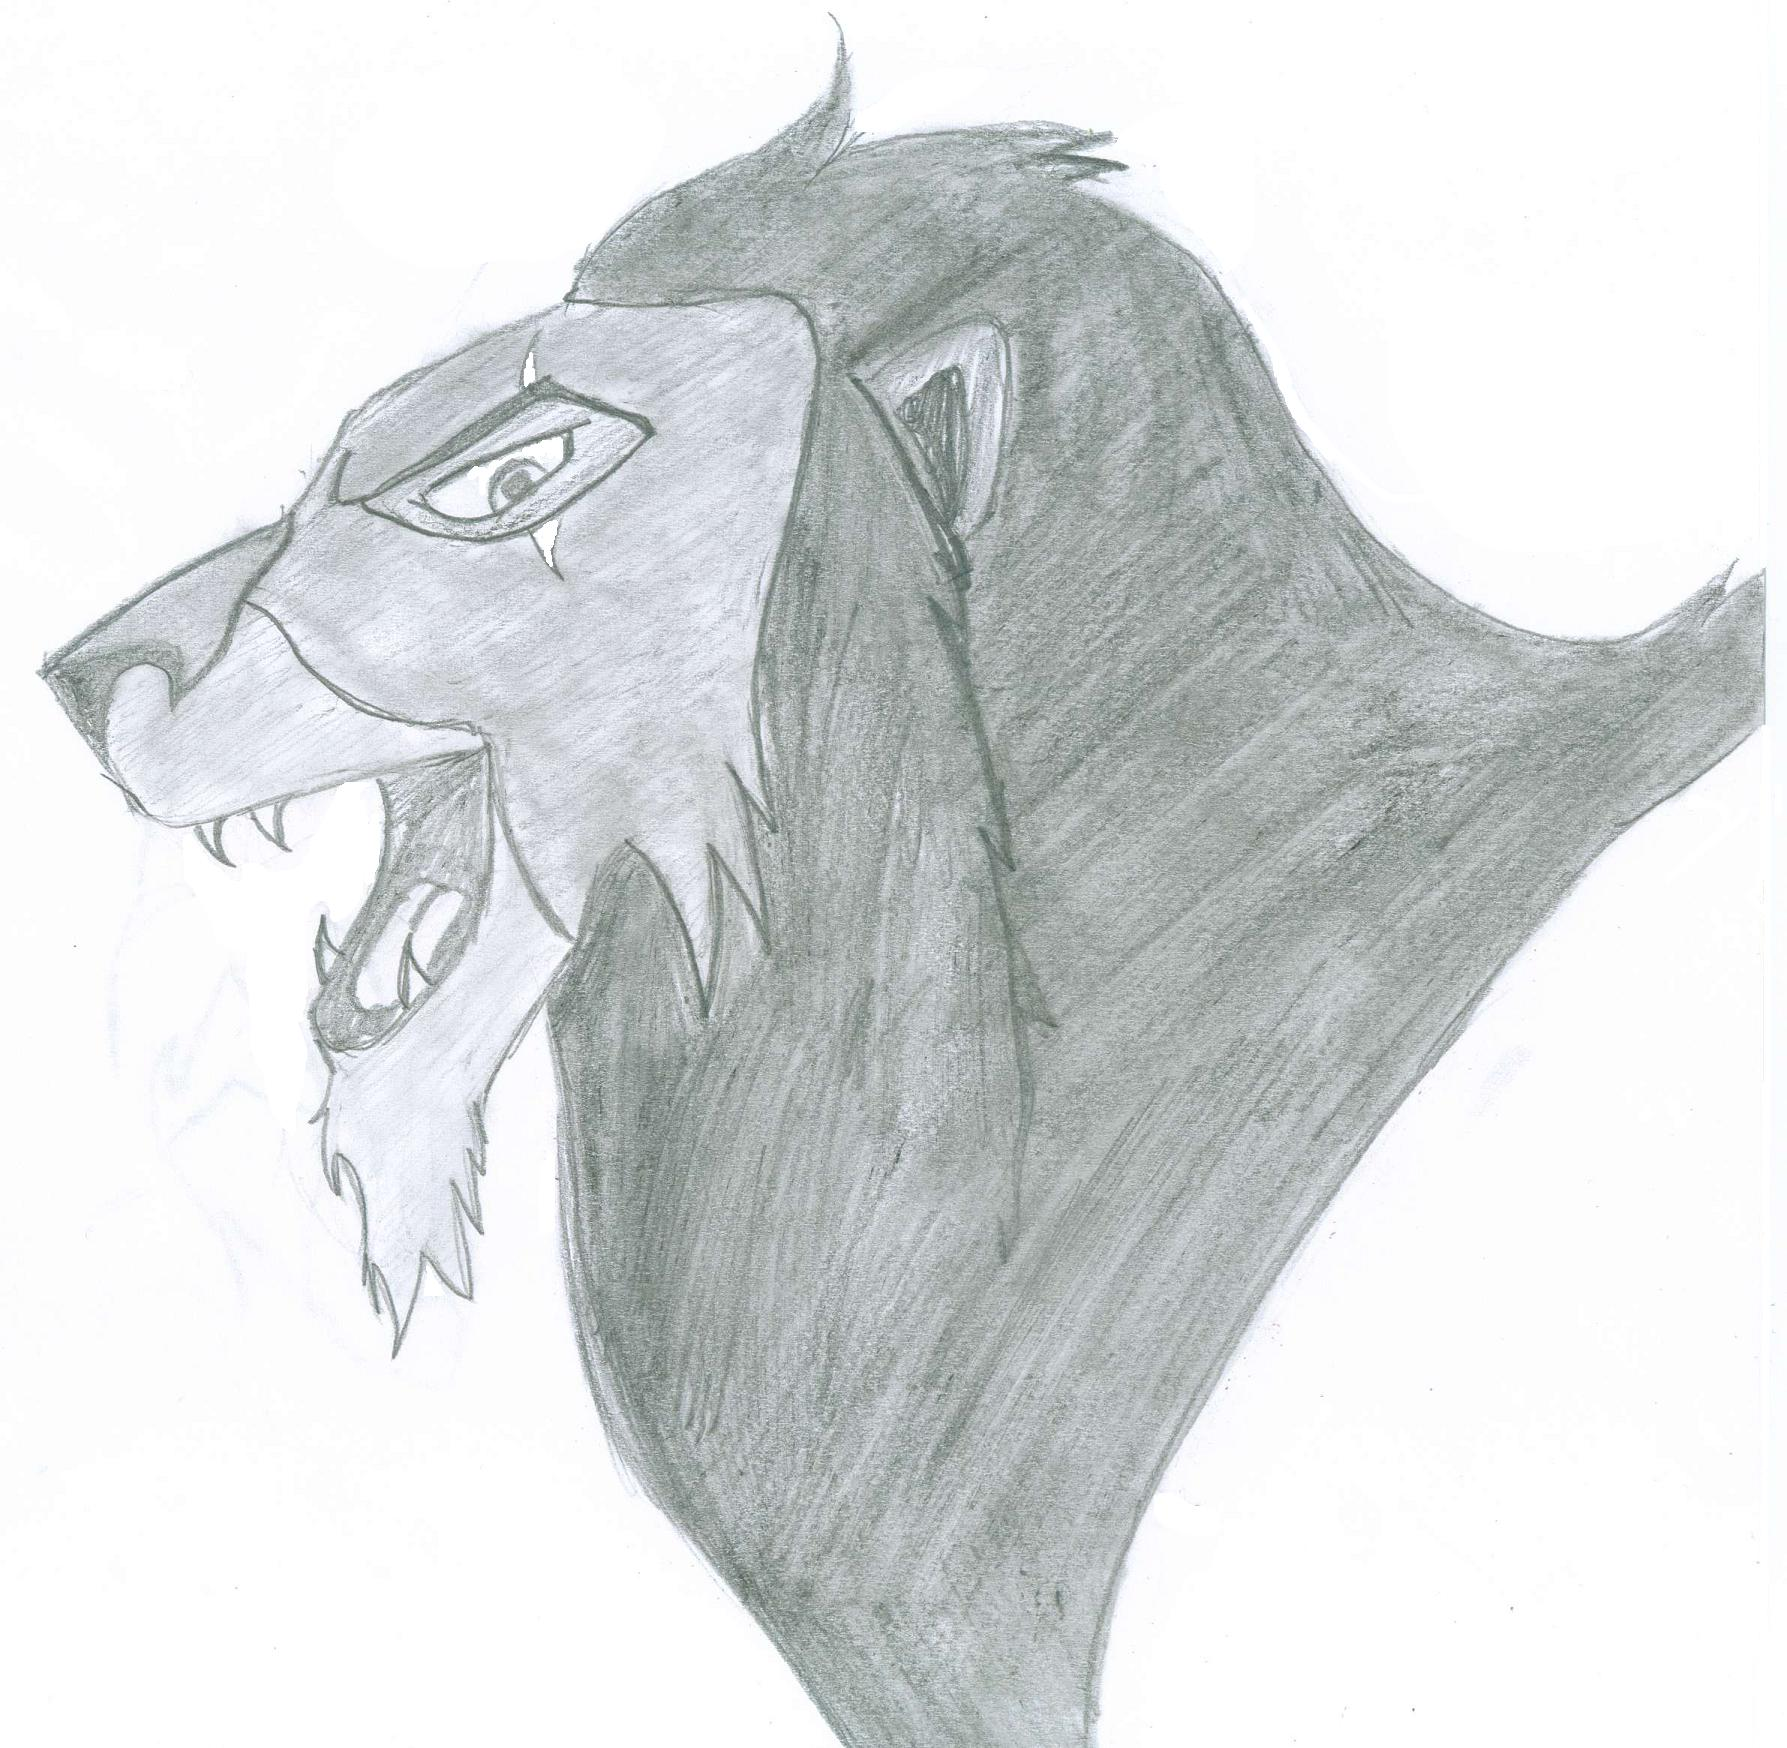 Scar (From Lion King)